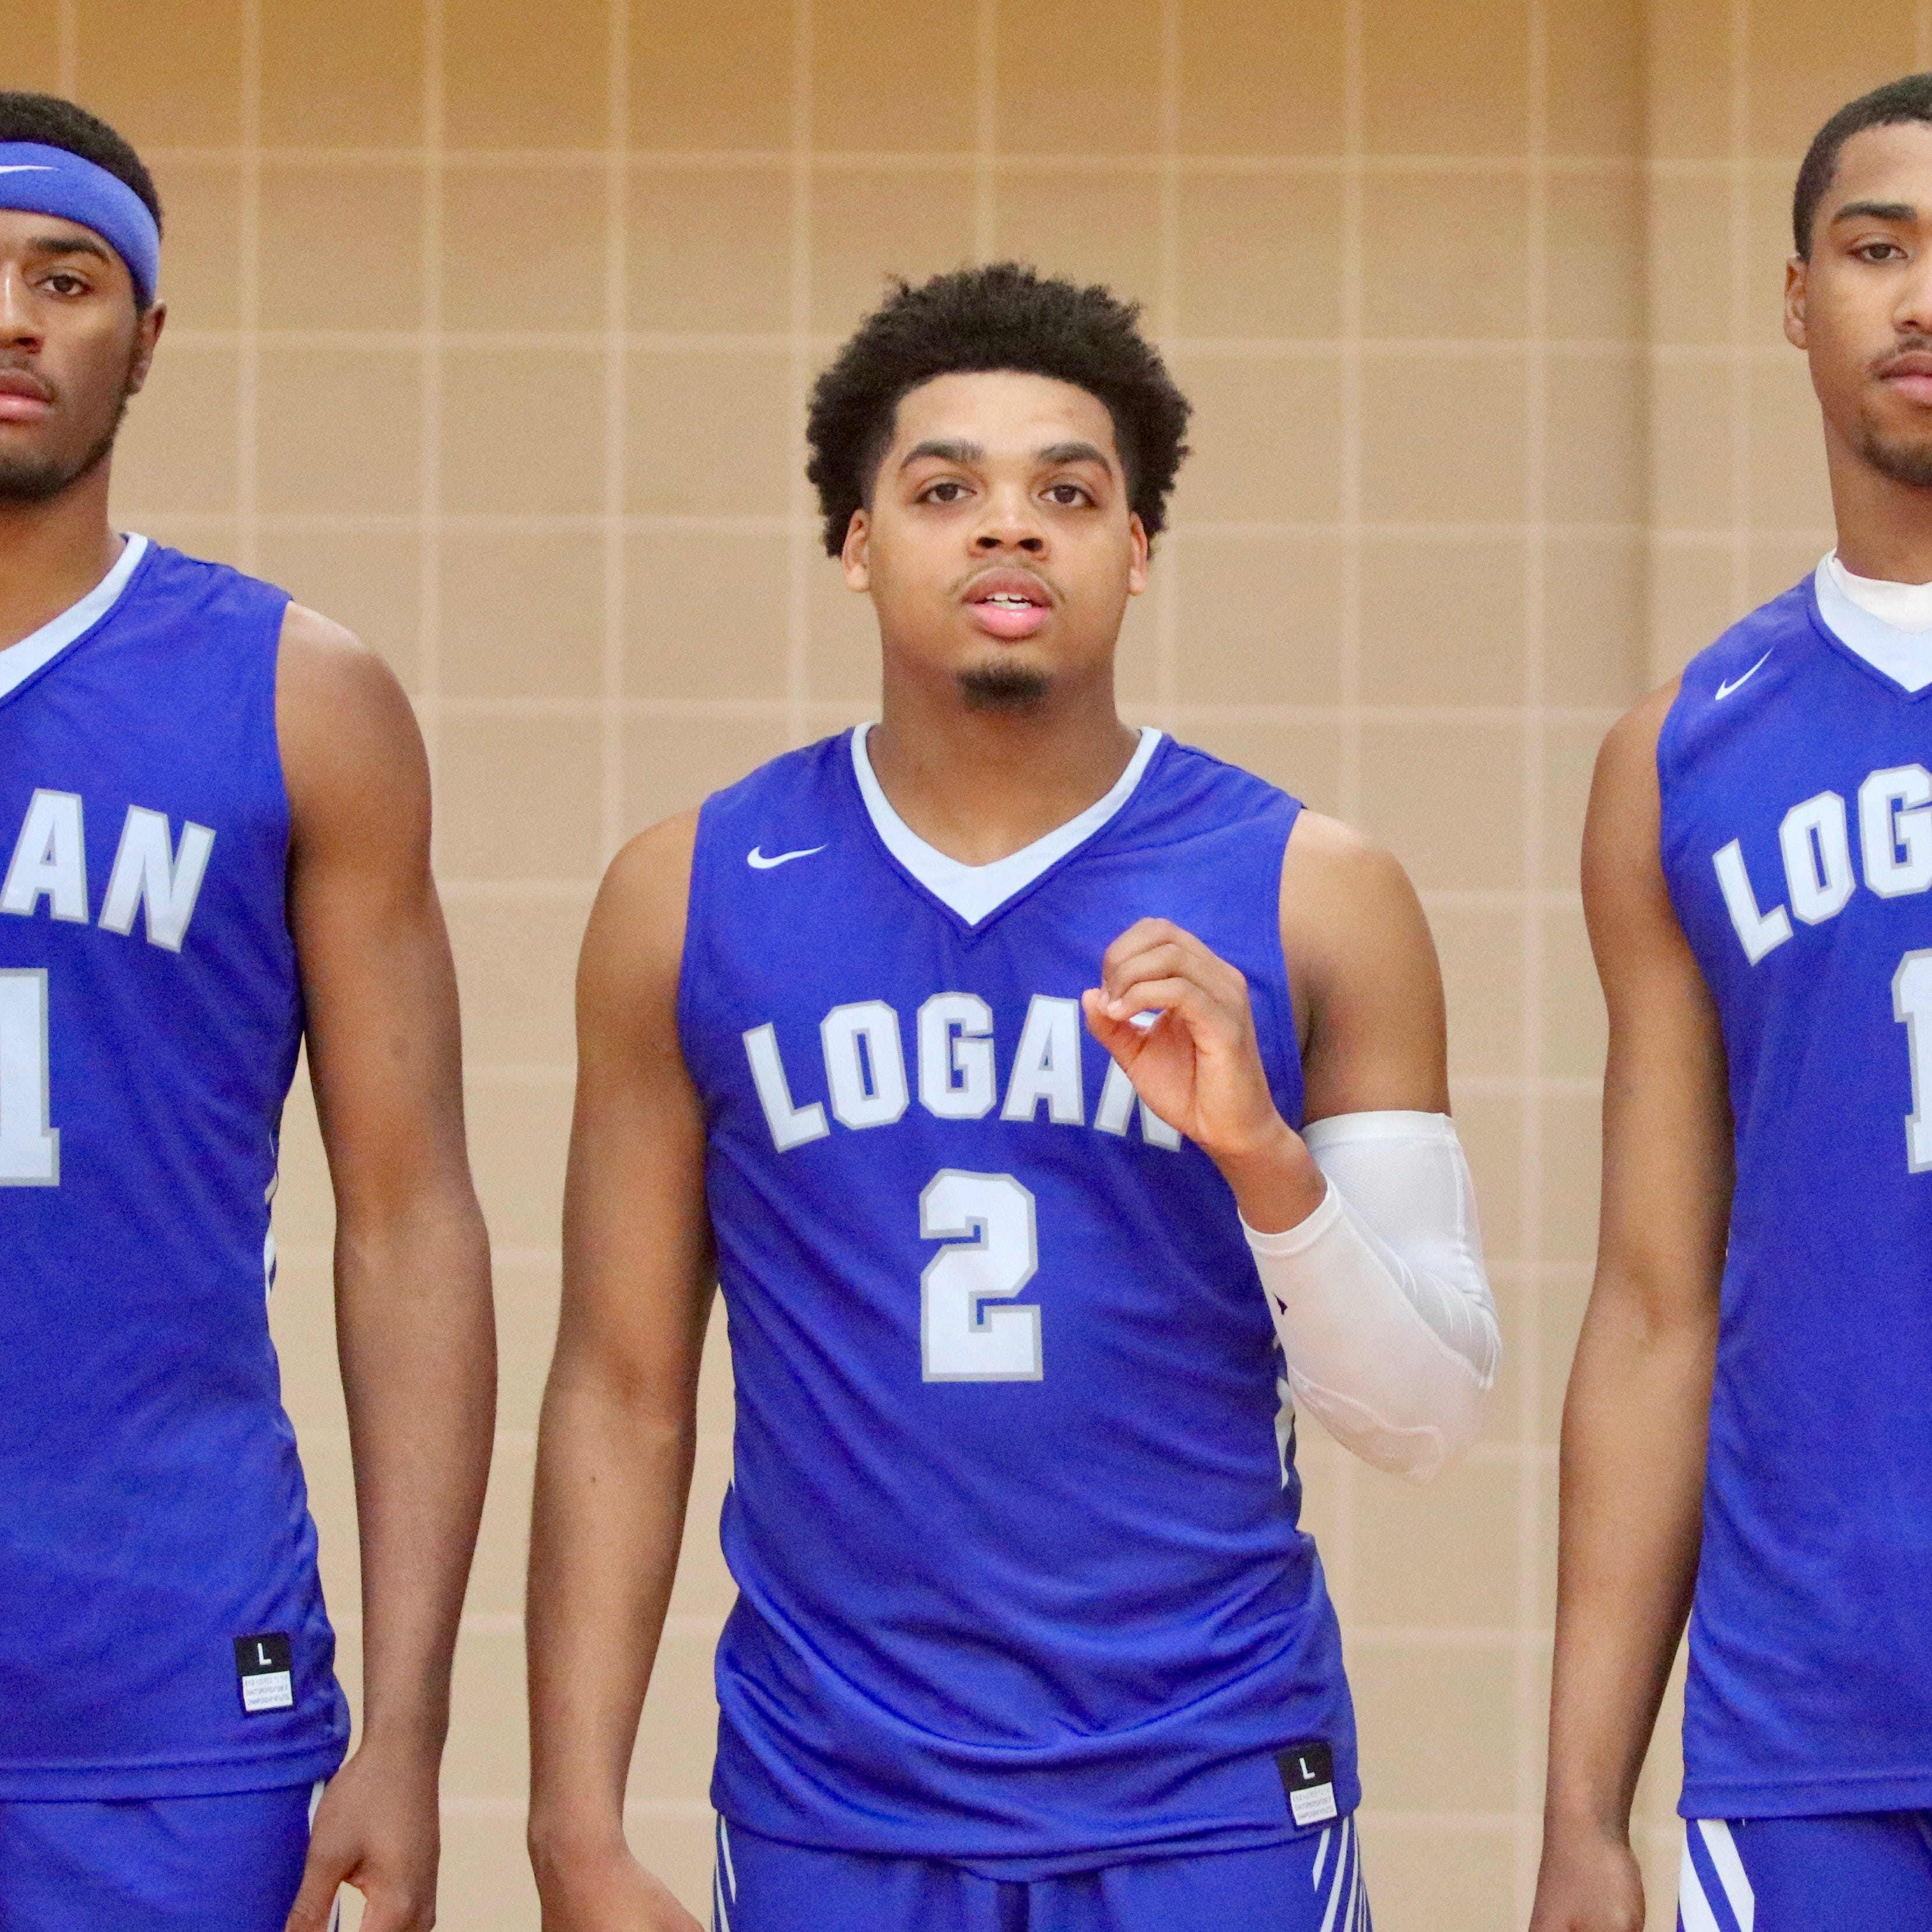 Kentucky high school basketball stars are a triple threat at Illinois junior college